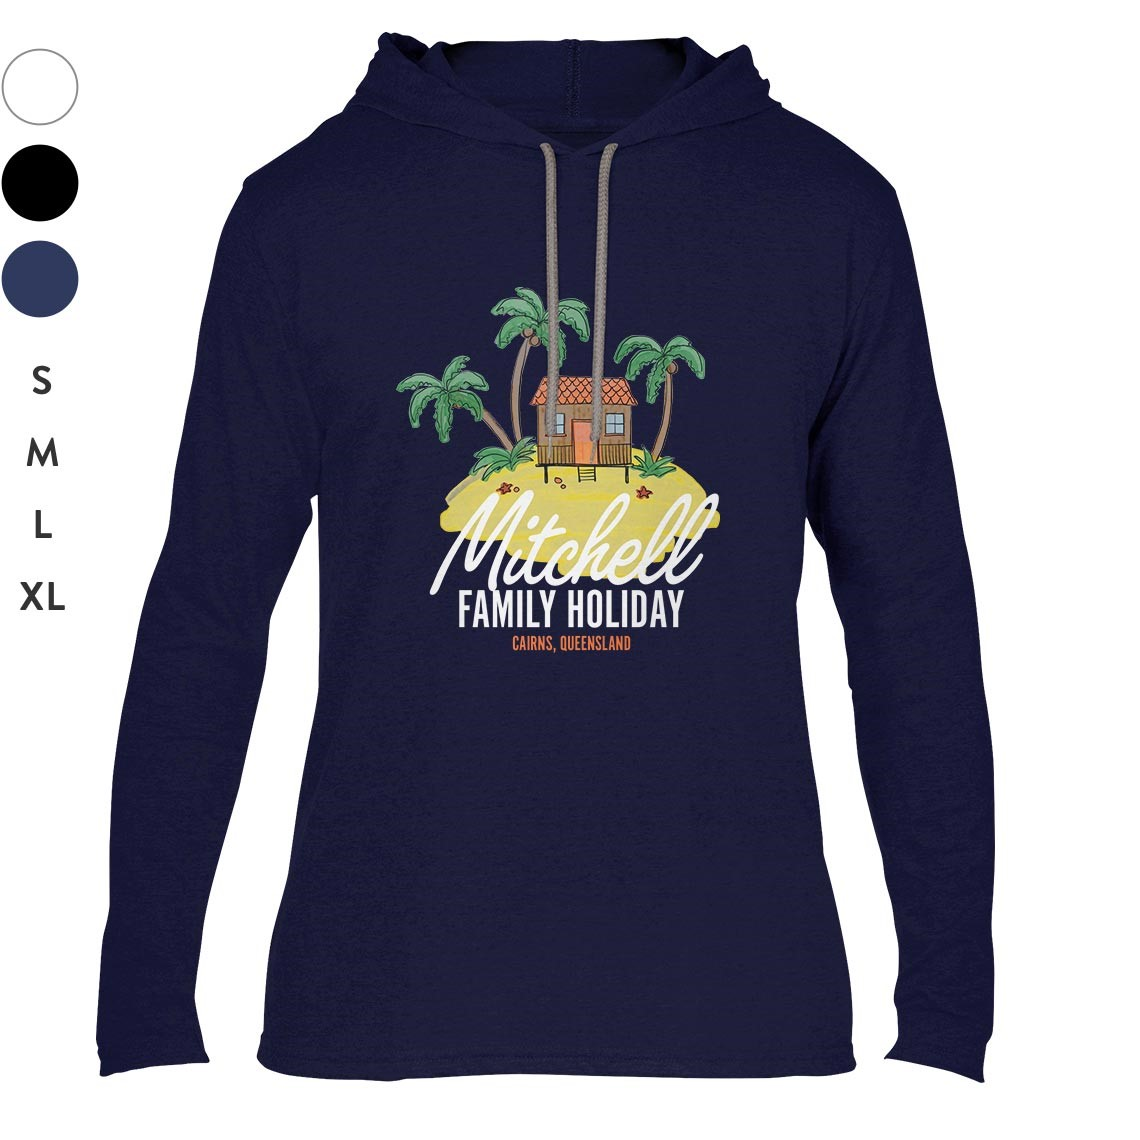 Adult Long Sleeve Hooded T Shirts